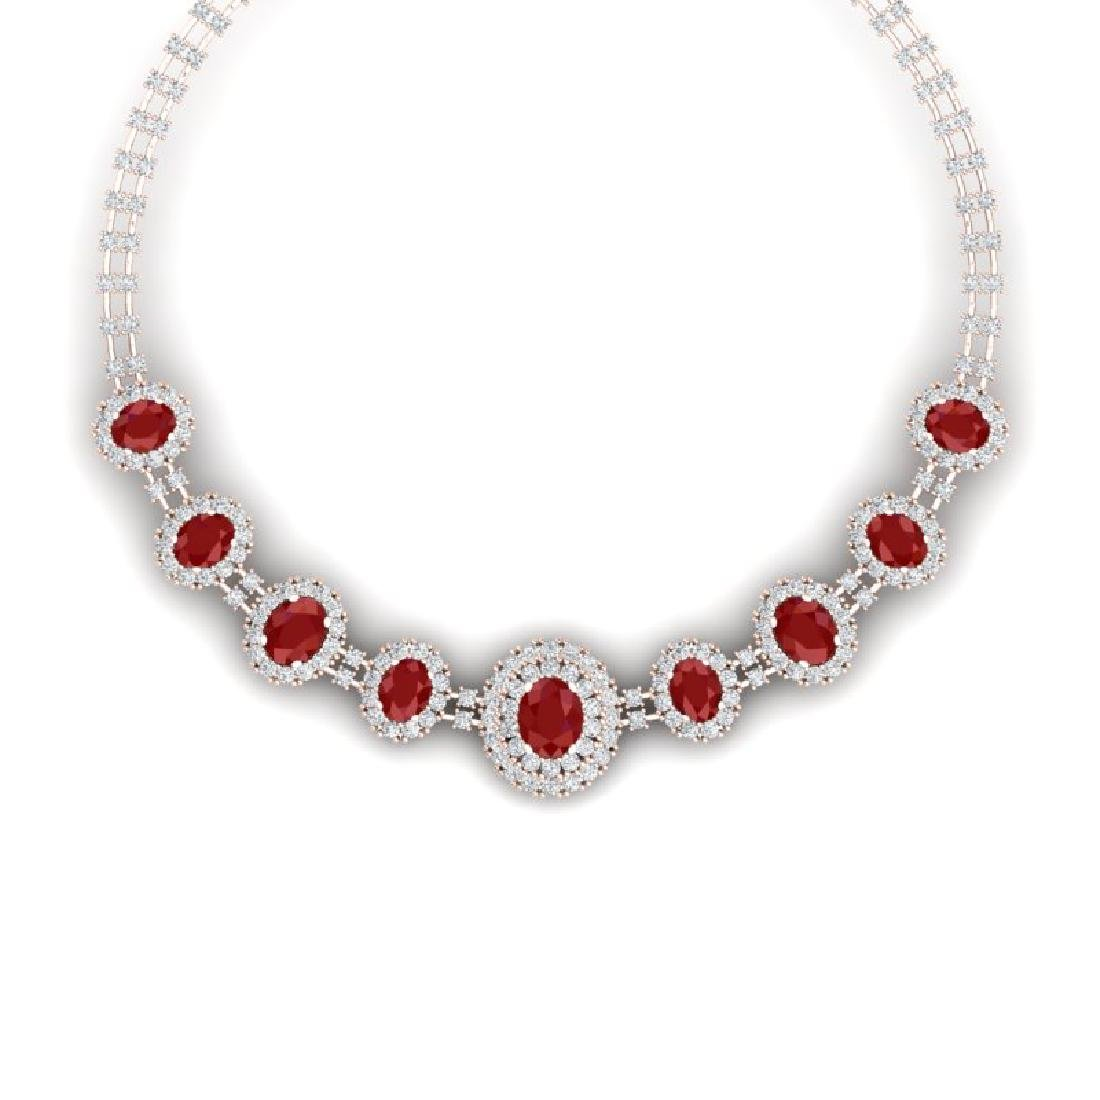 45.69 CTW Royalty Ruby & VS Diamond Necklace 18K Rose